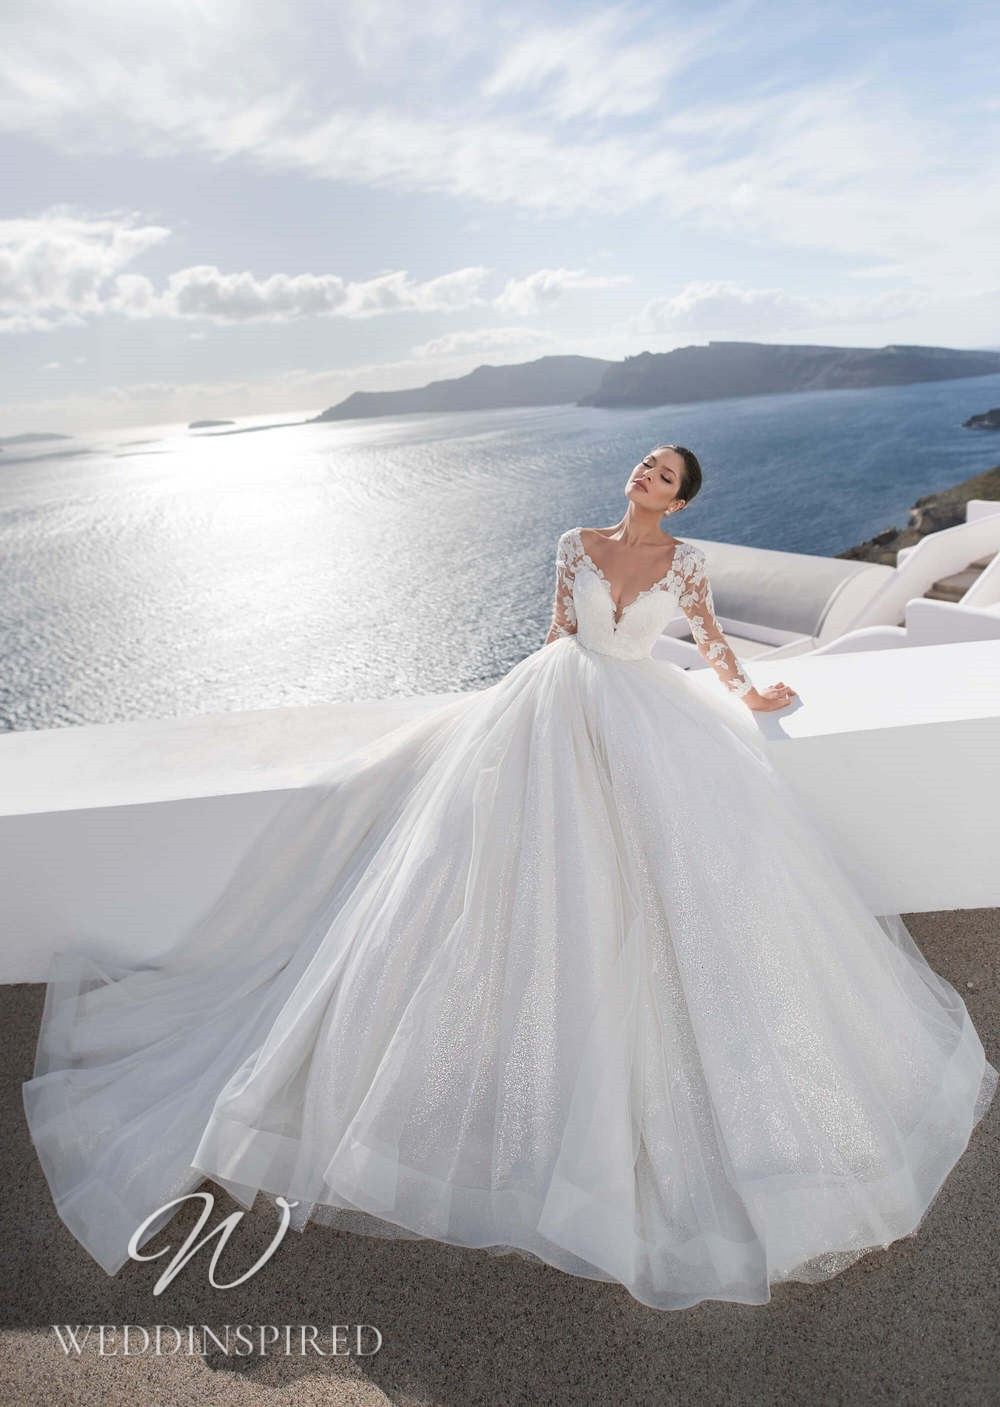 A Blunny 2021 lace and tulle princess wedding dress with long sleeves